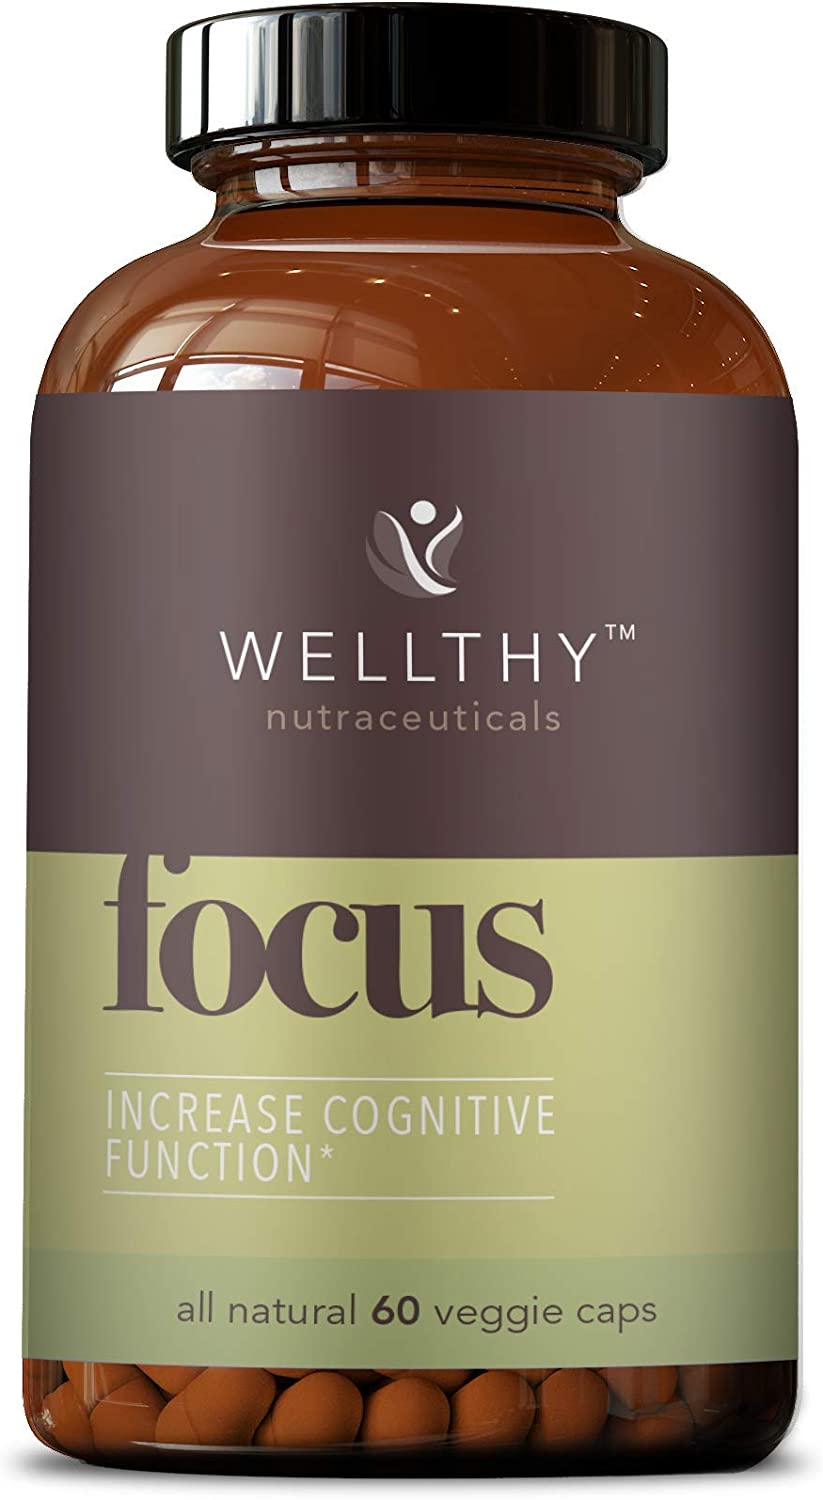 Wellthy Focus Cognitive Function Support 60 Capsules